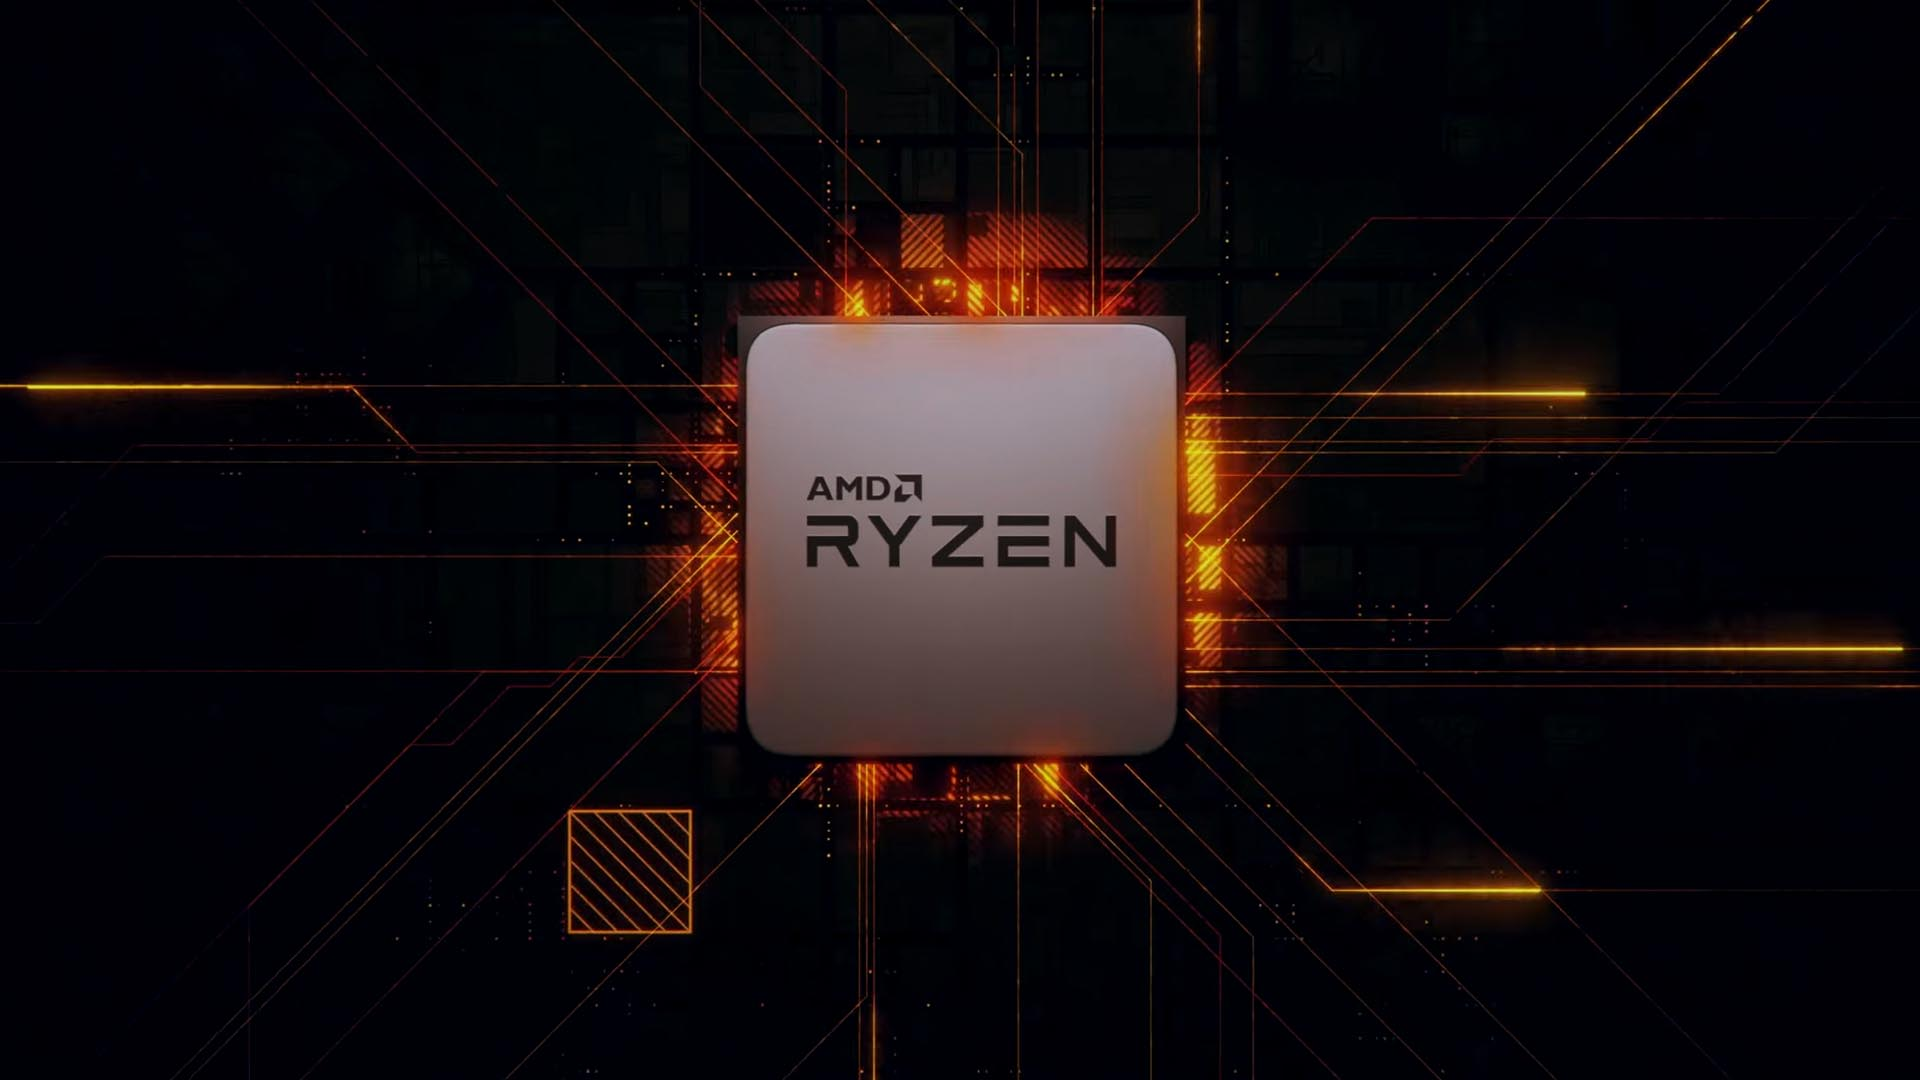 Amd S Ryzen 3000 Cpus Are Now Reaching Notably Higher Clocks Compared To Launch Explaining The Matisse Refresh Hardware Times